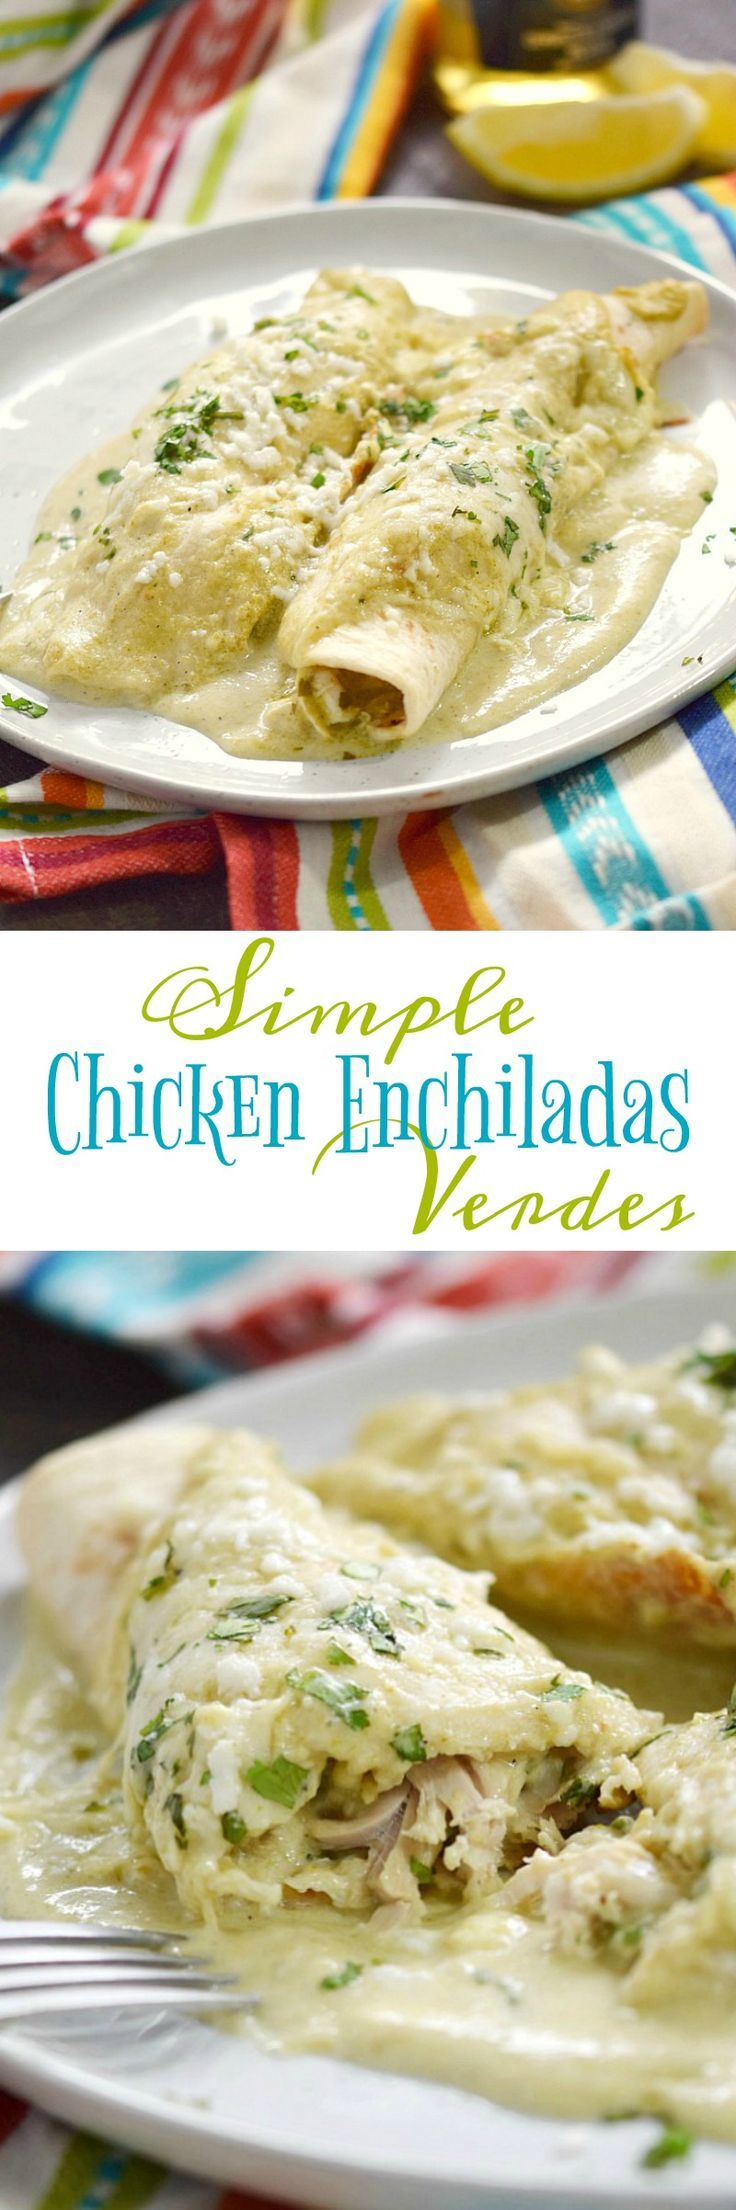 These Simple Chicken Enchiladas Verdes are crazy delicious and couldn't be any easier to prepare. They are guaranteed to become a family favorite | http://cookingwithcurls.com